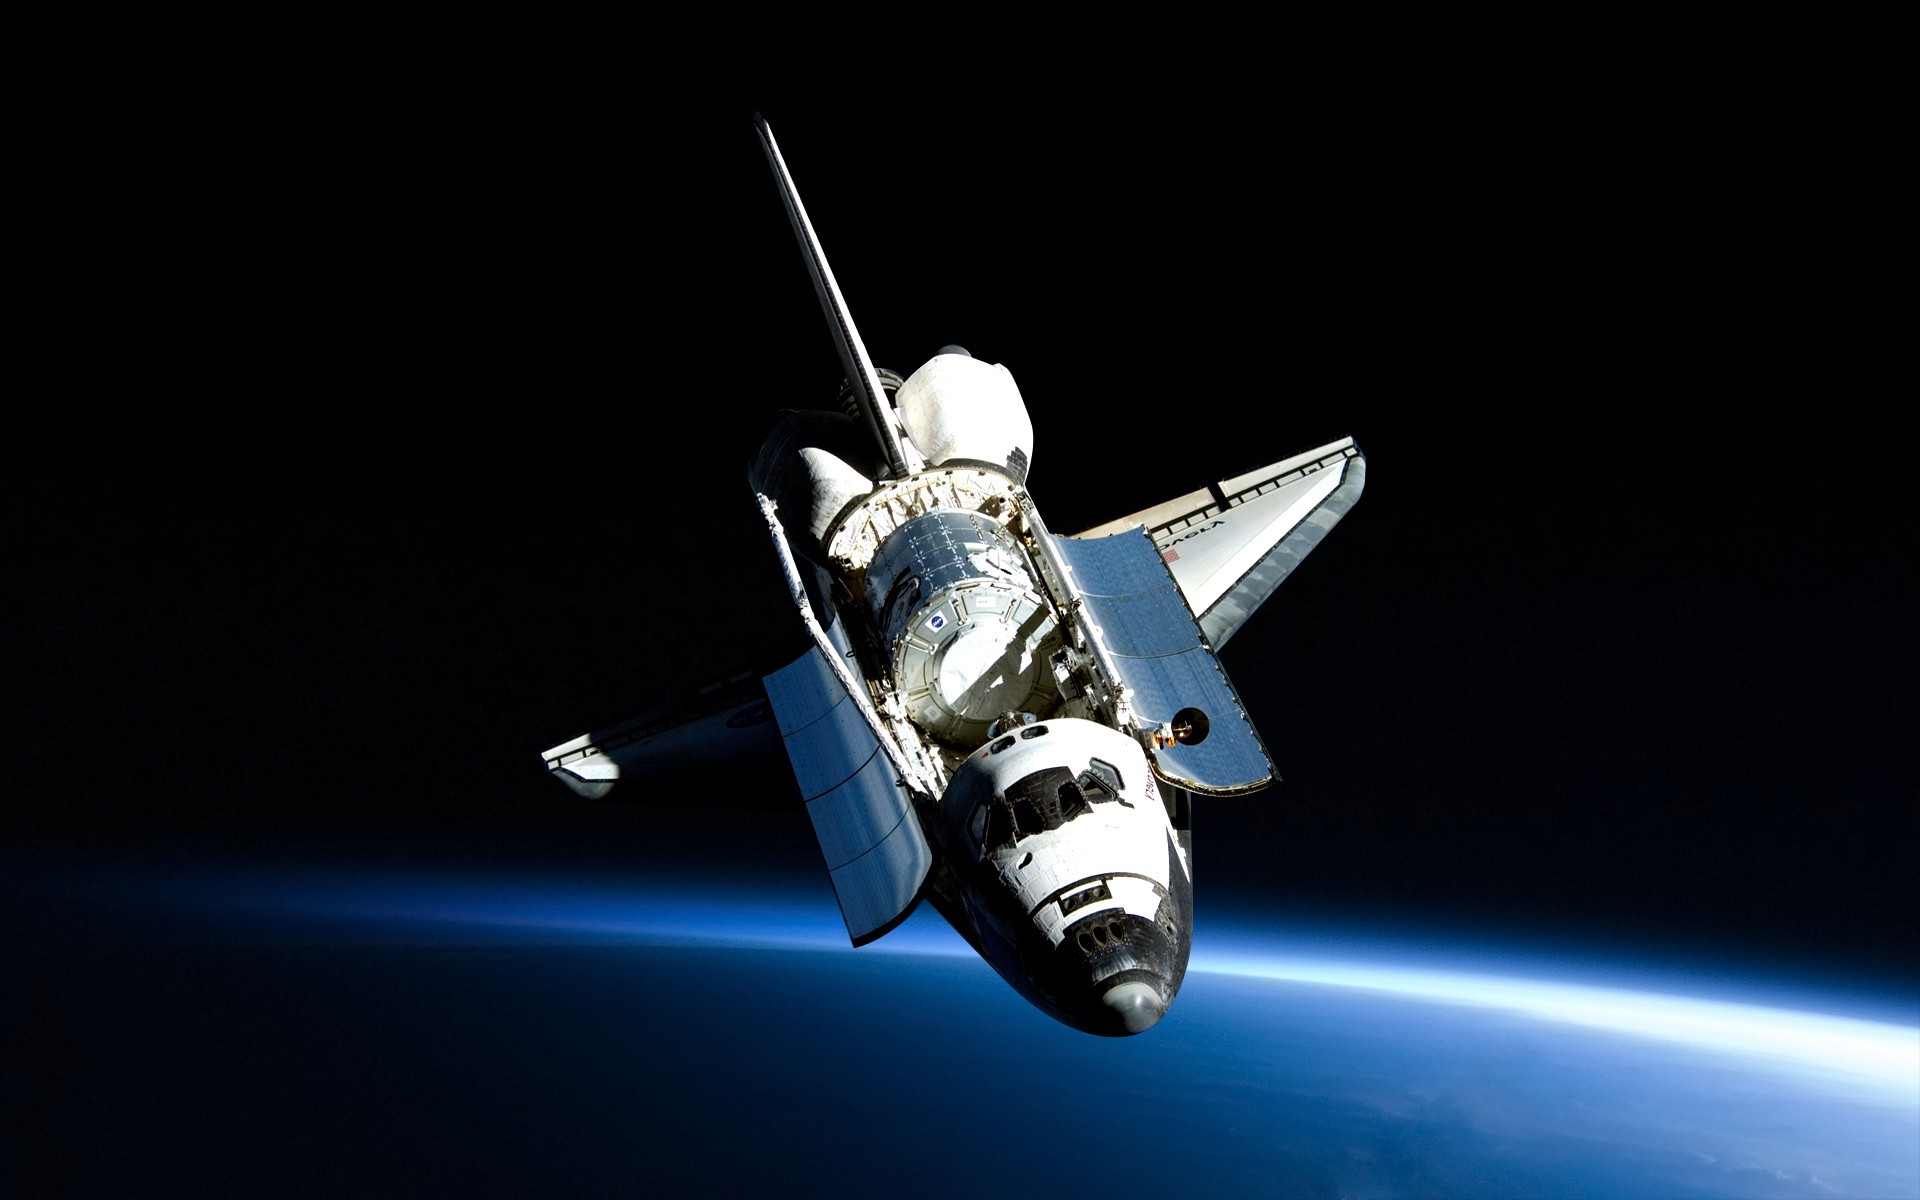 Space Shuttle Wallpapers and Background Images   stmednet 1920x1200